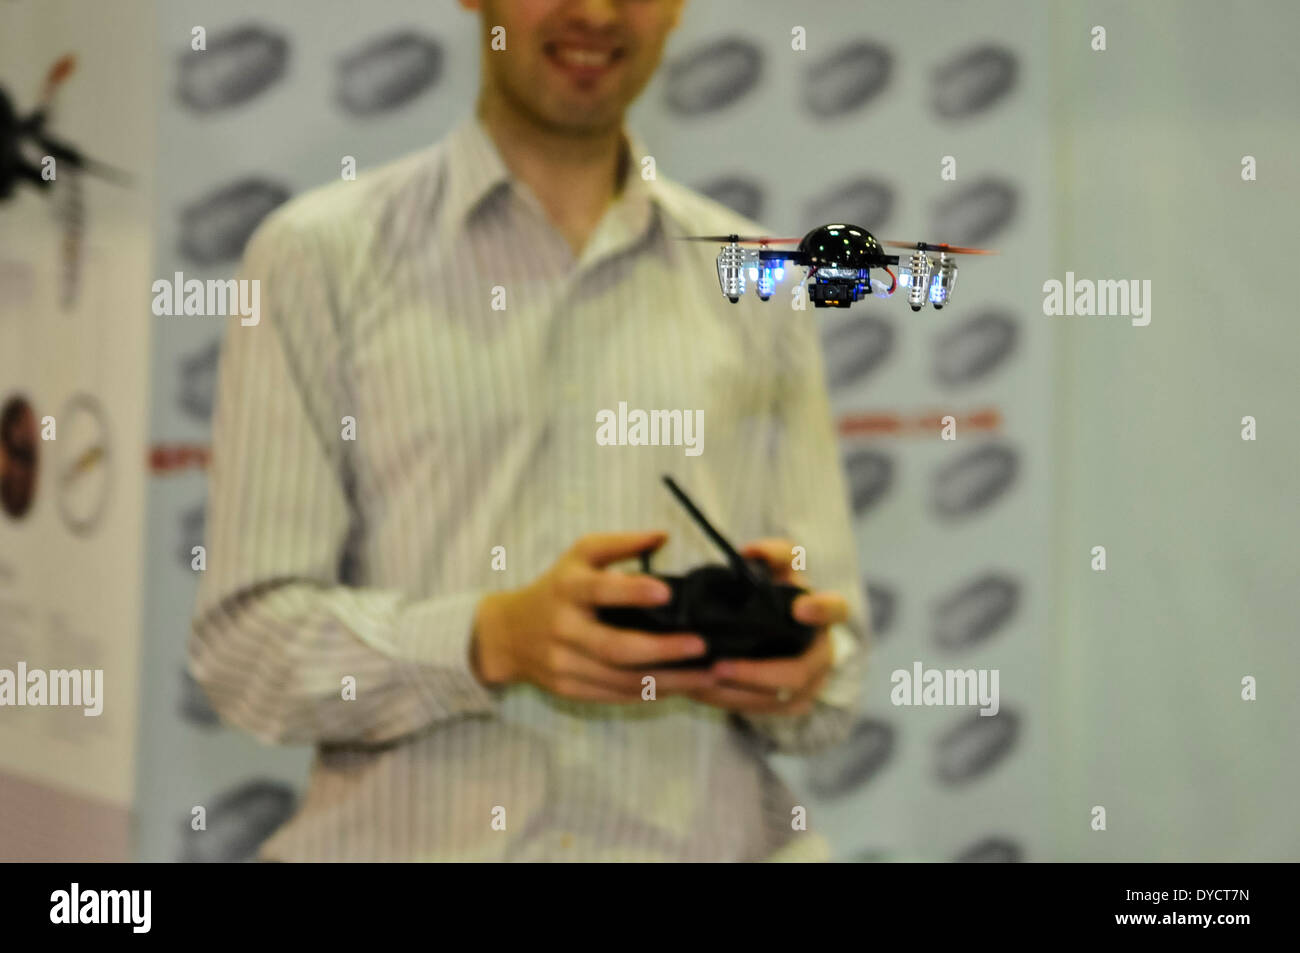 A man flies a miniature quad-copter drone - Stock Image